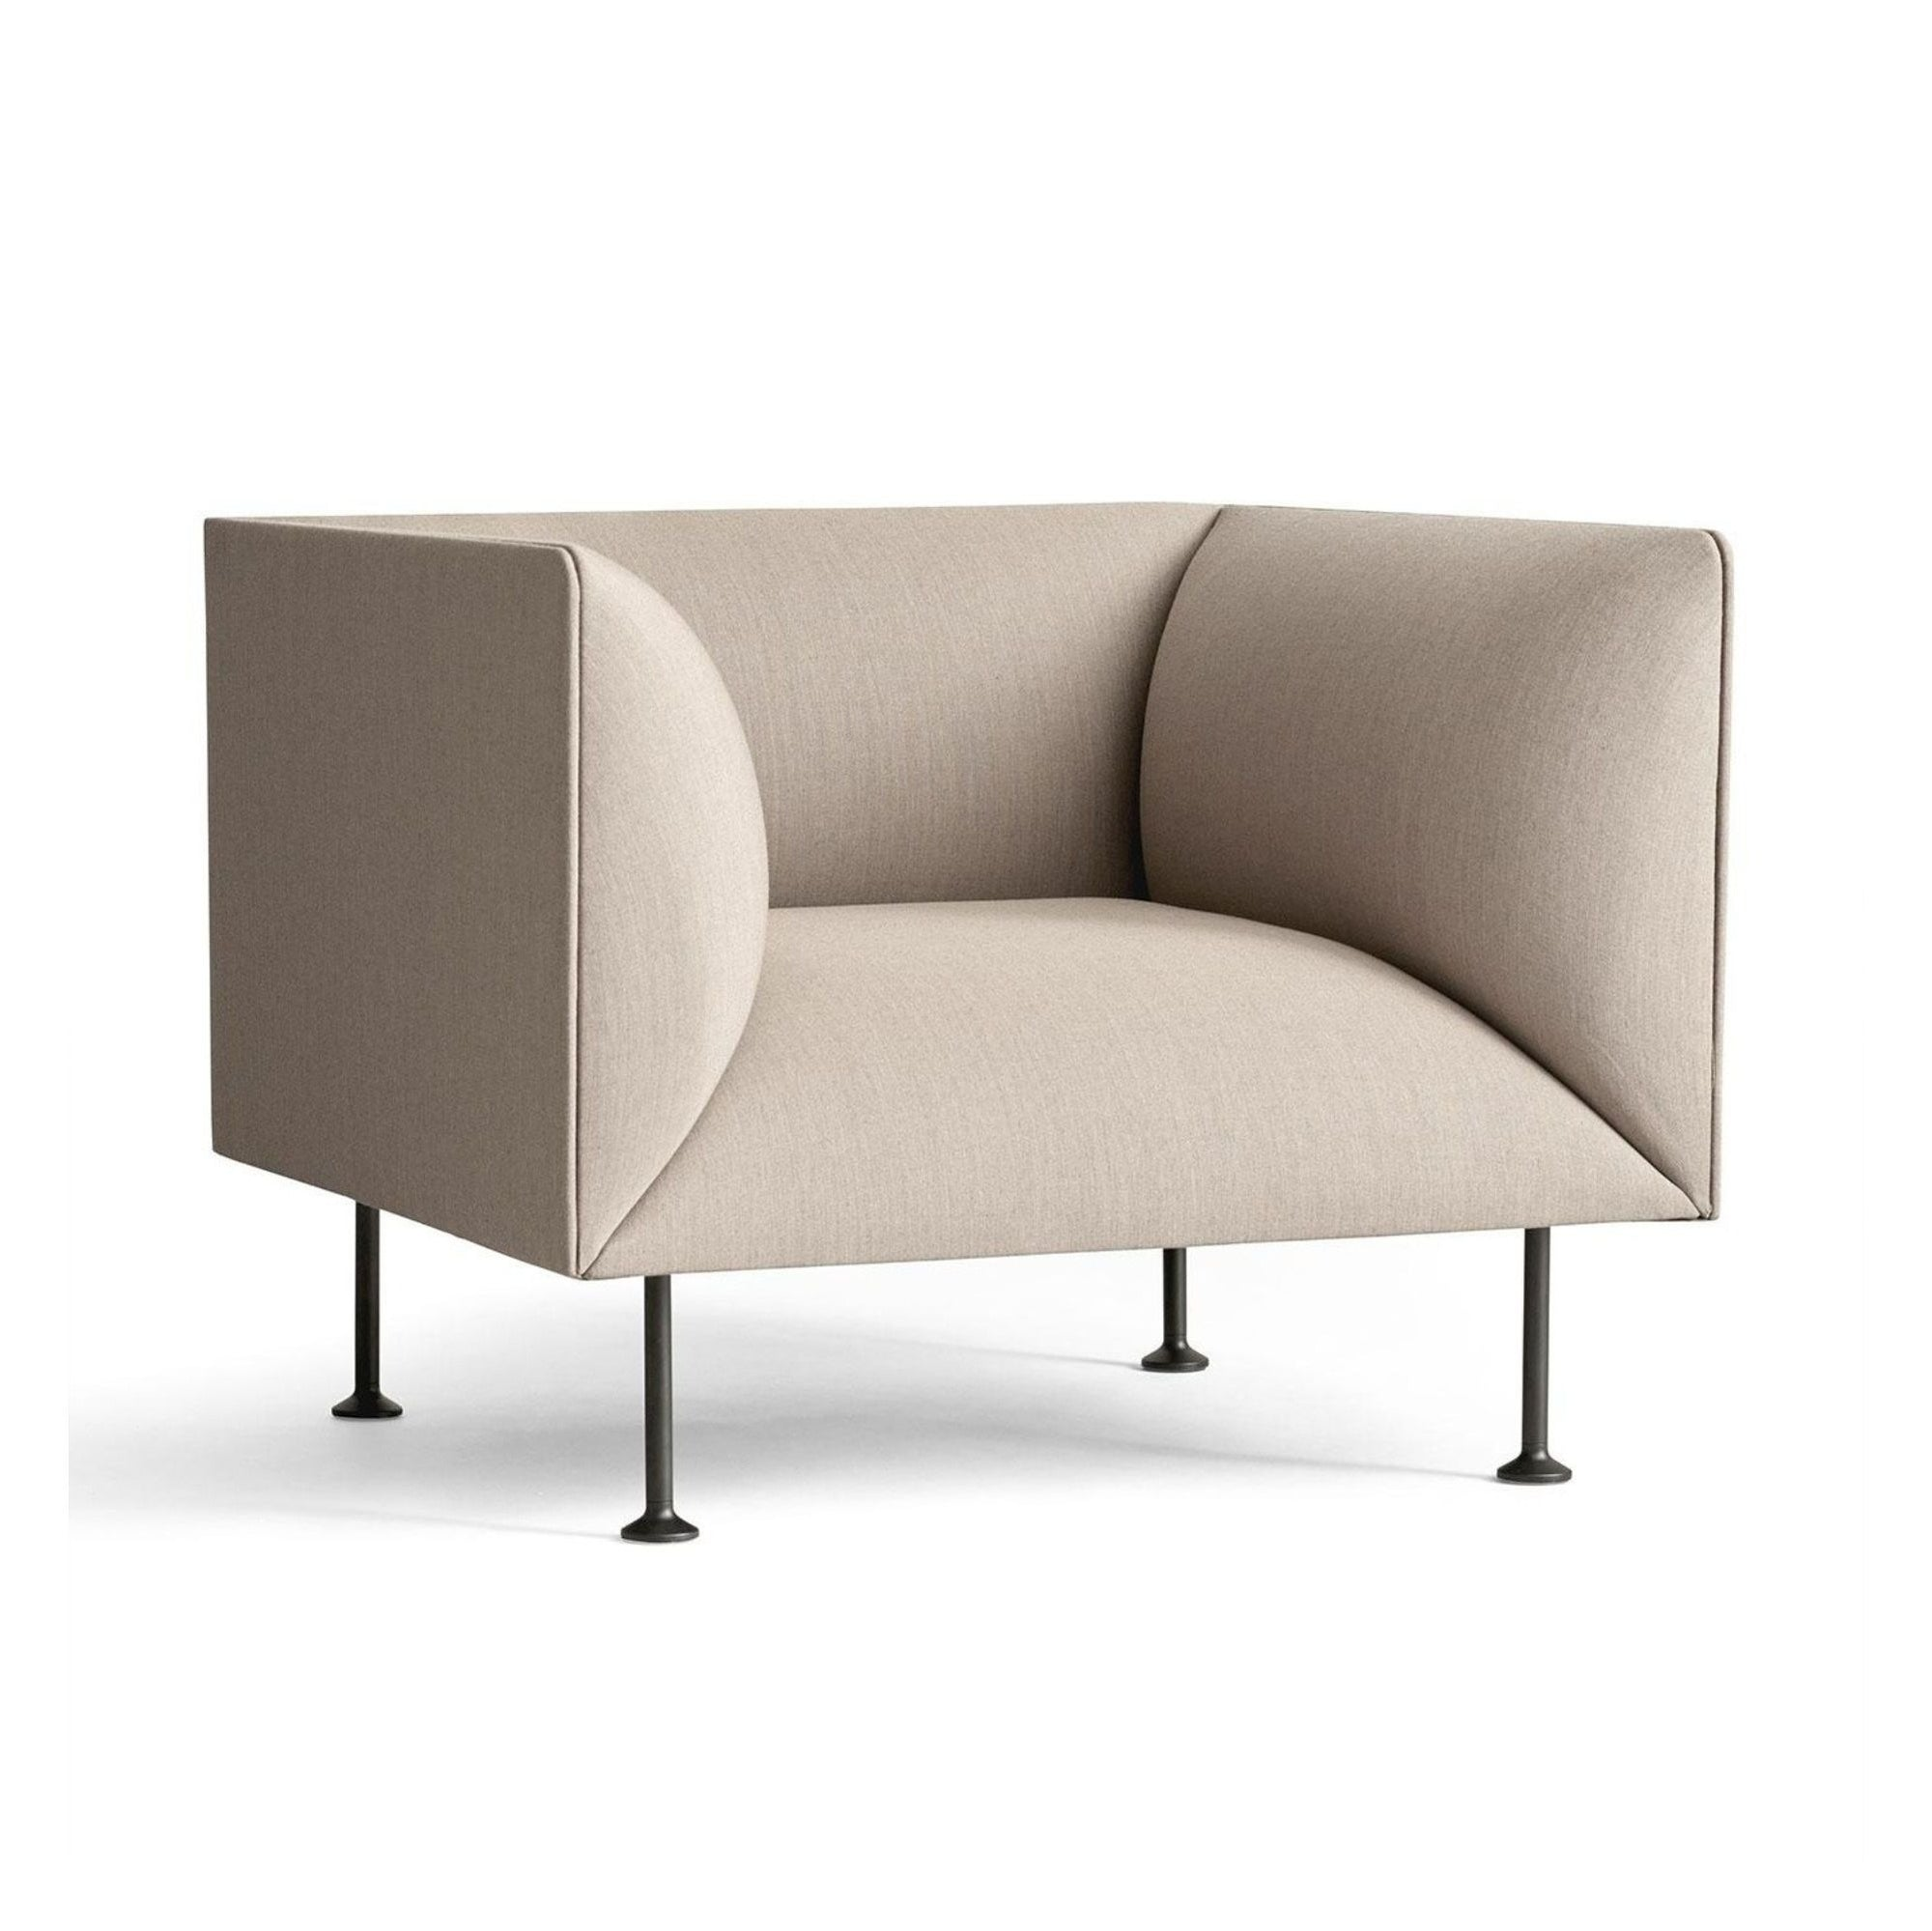 Menu Godot Sofa 1-Seater , Remix2 233